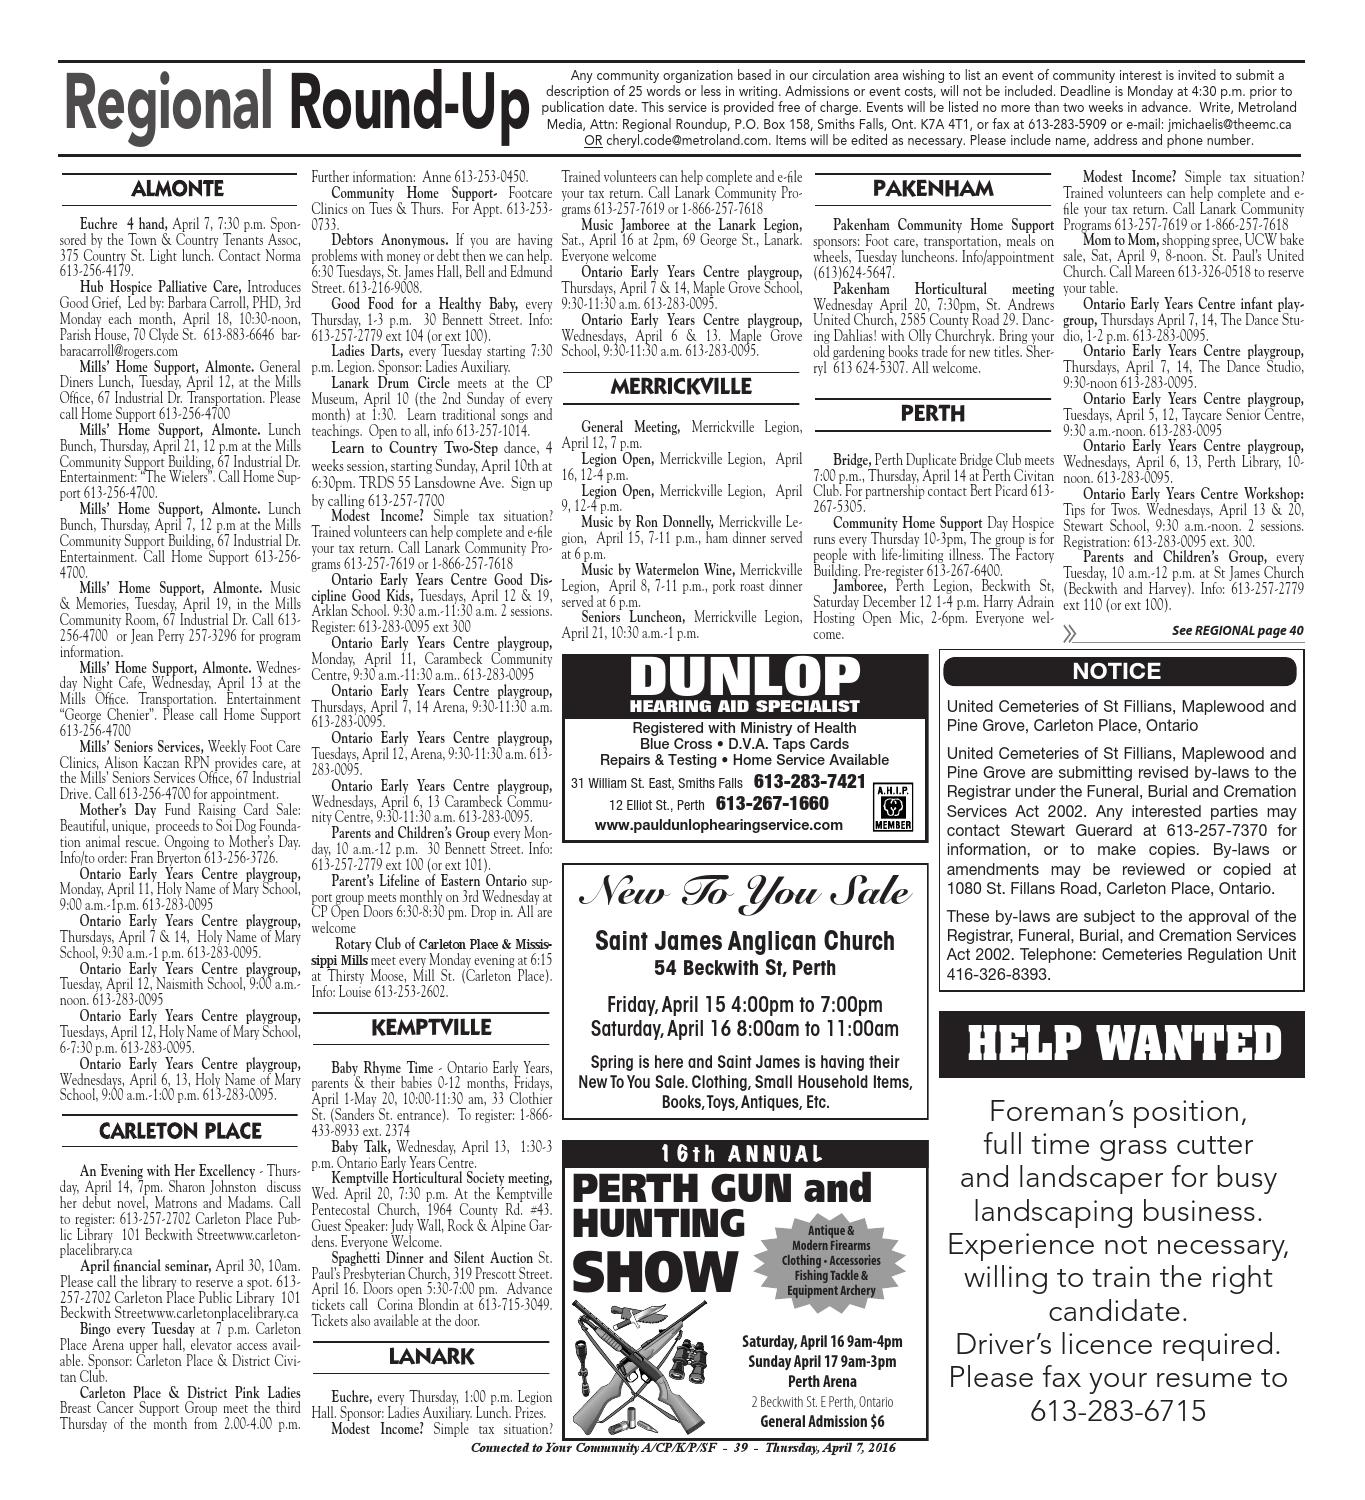 smithsfalls040716 by metroland east - smiths falls record news - issuu